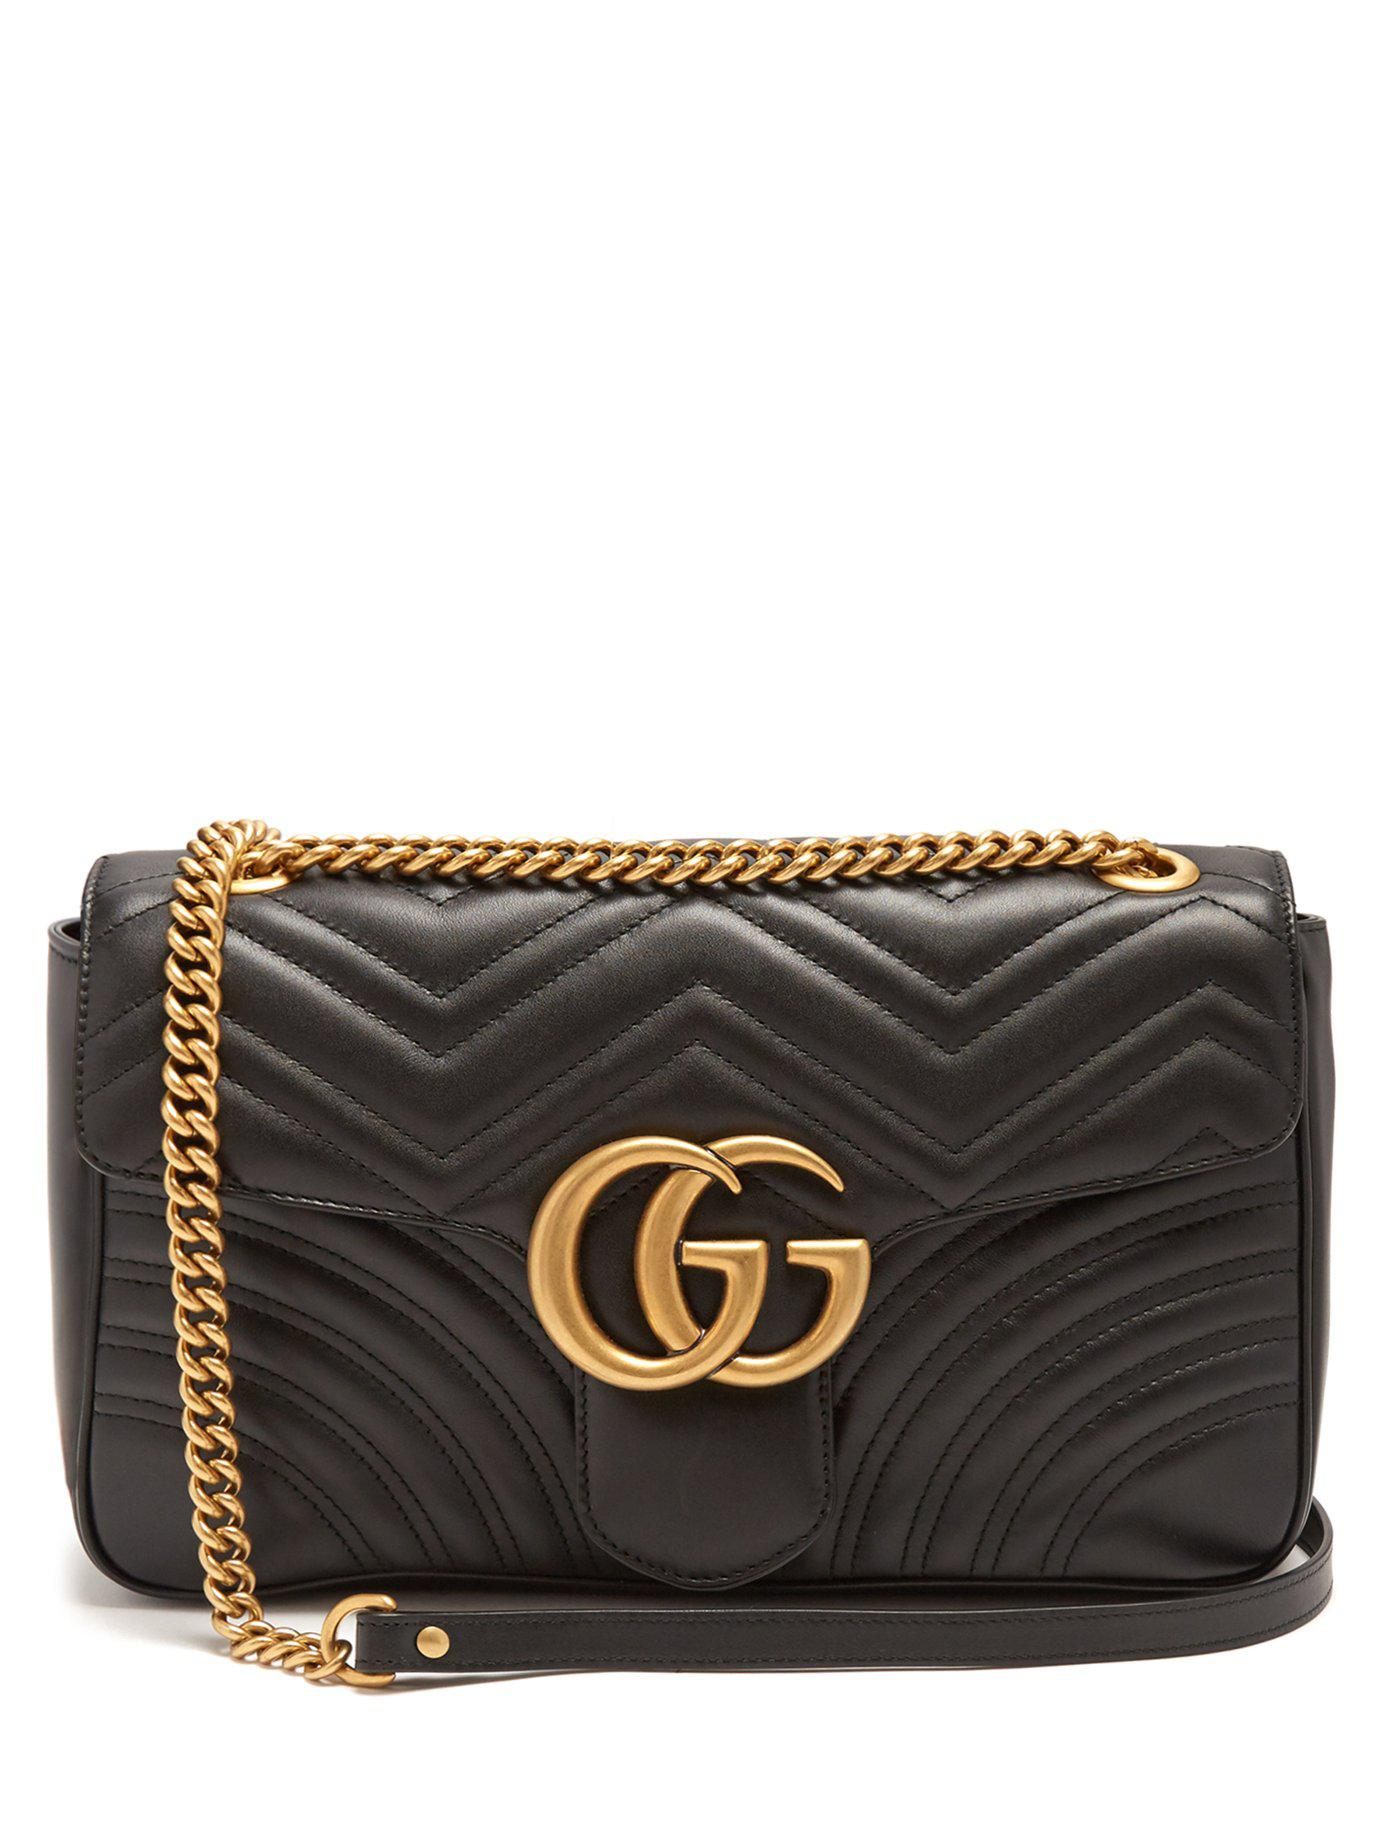 fcbeb125db0 Gucci Gg Marmont Quilted-leather Shoulder Bag in Black - Save ...